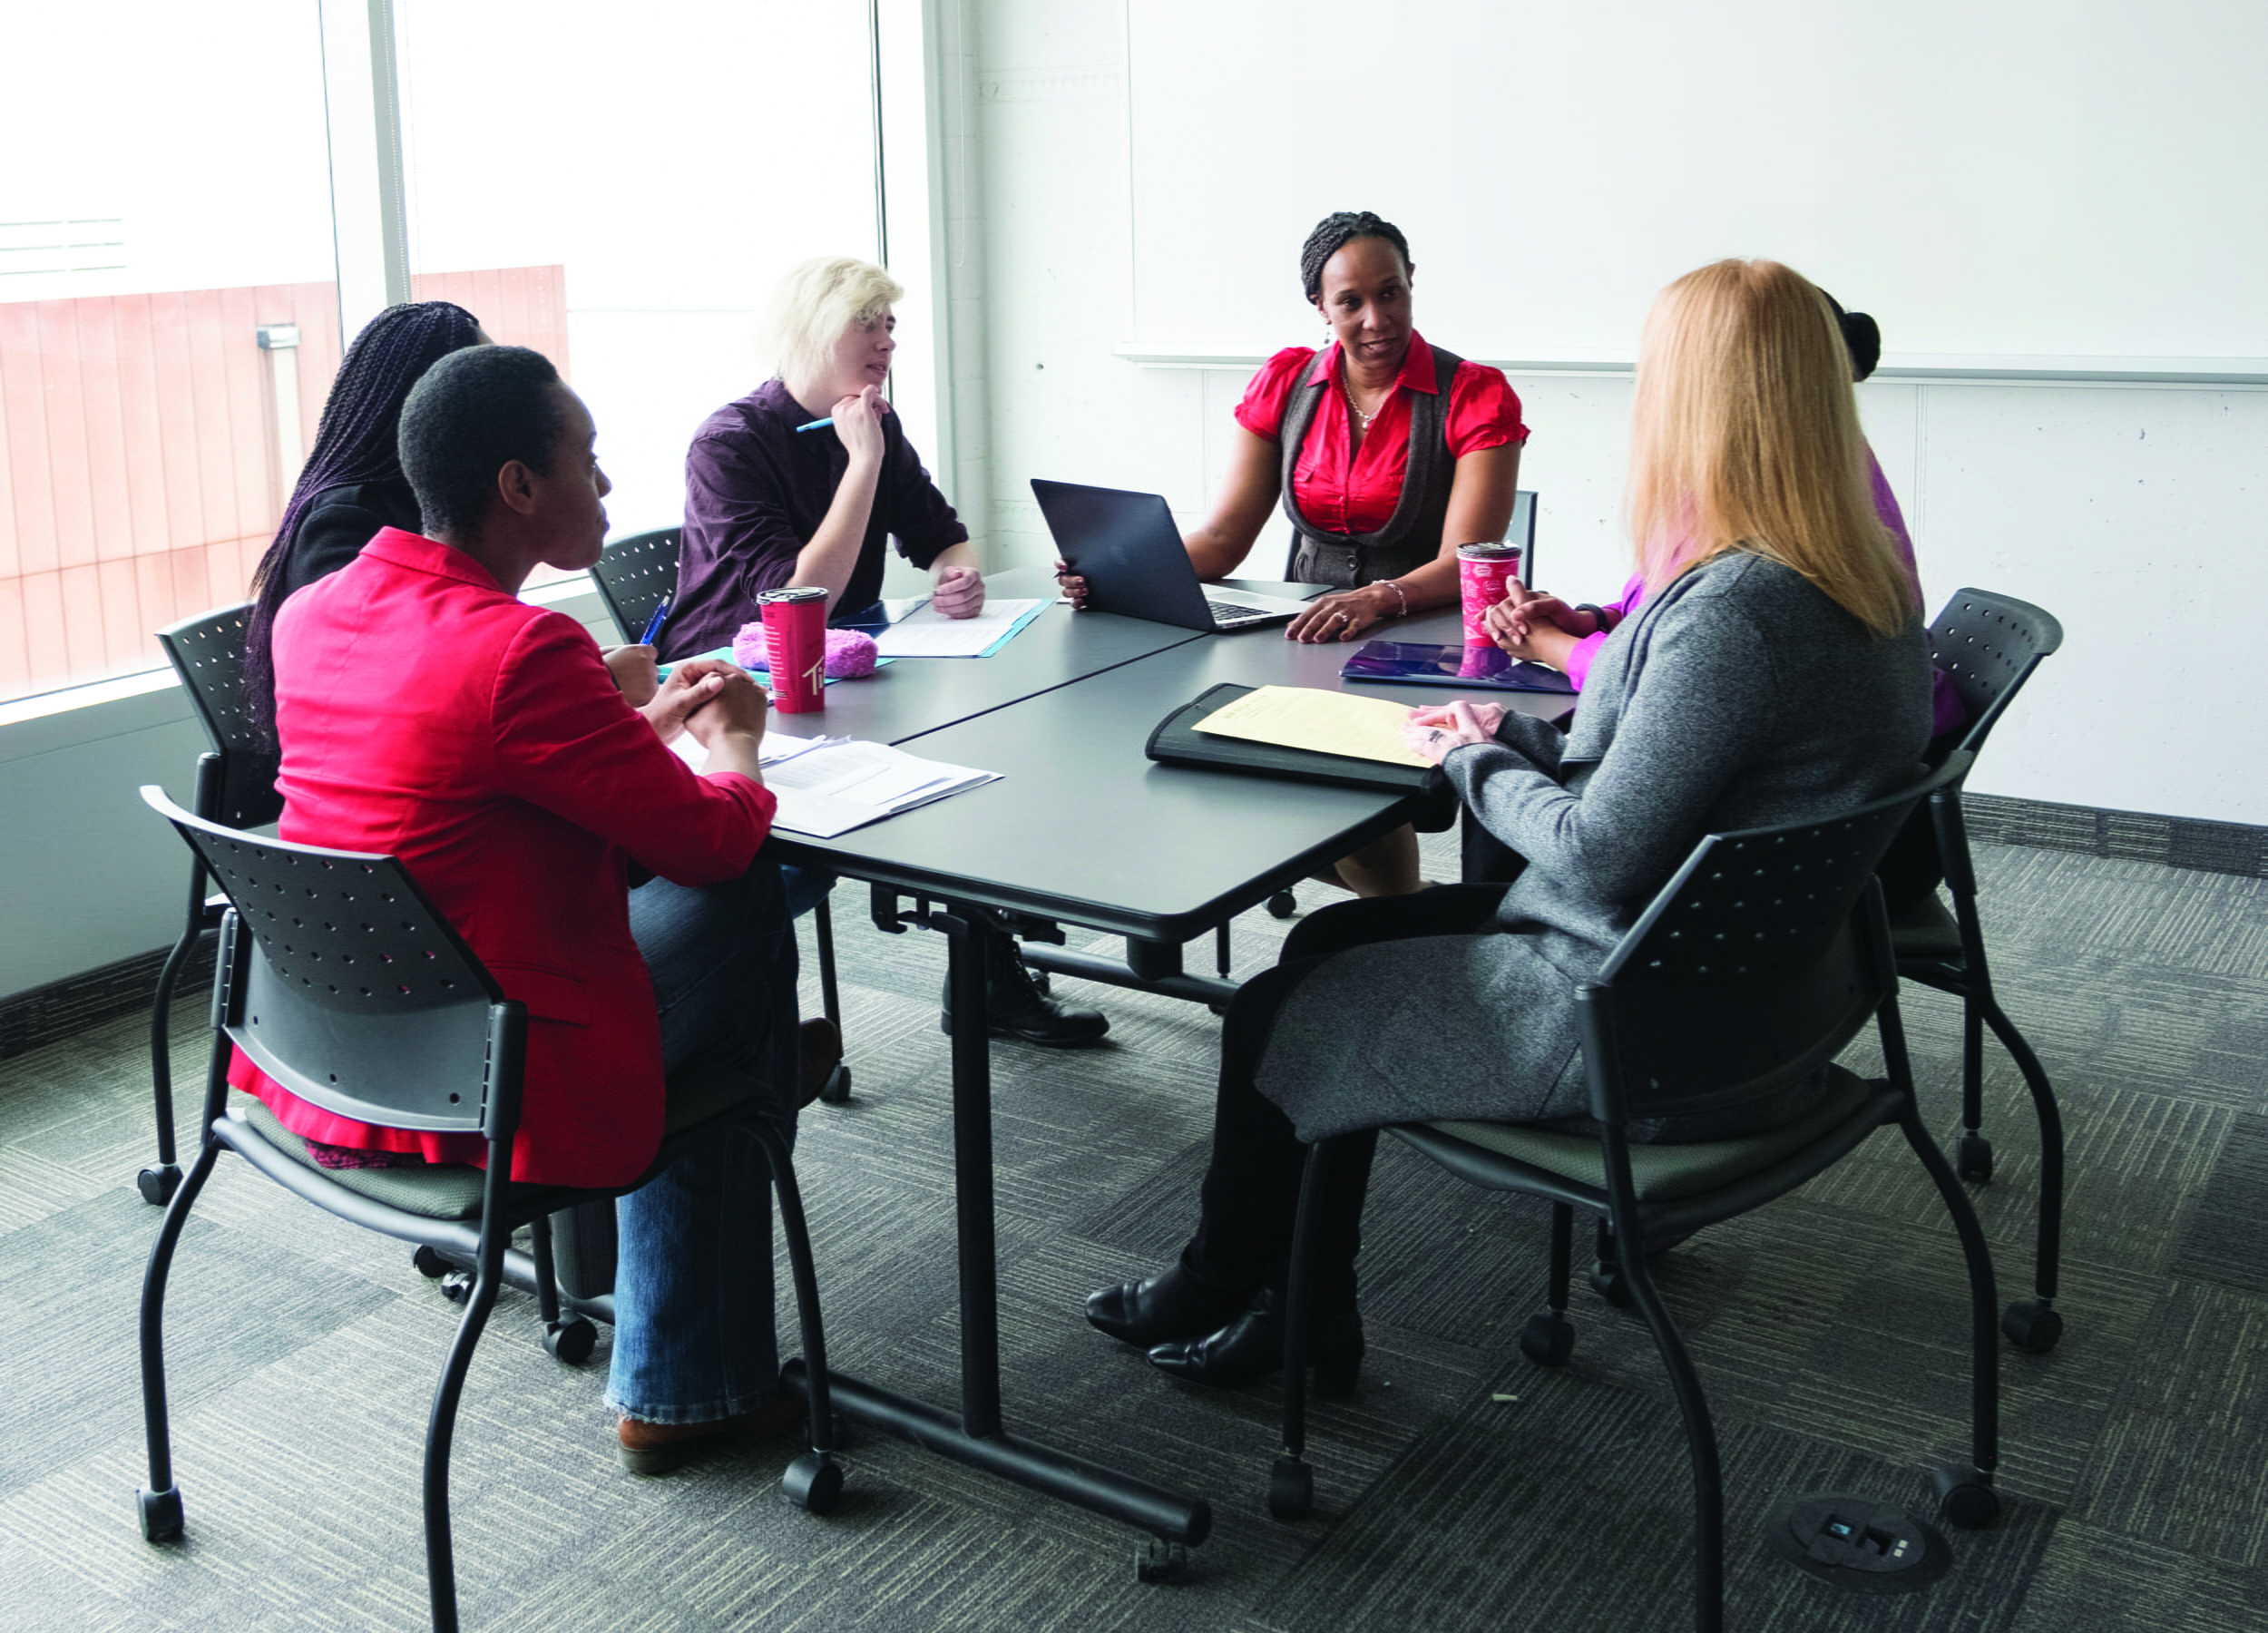 Social Service workers in a meeting room